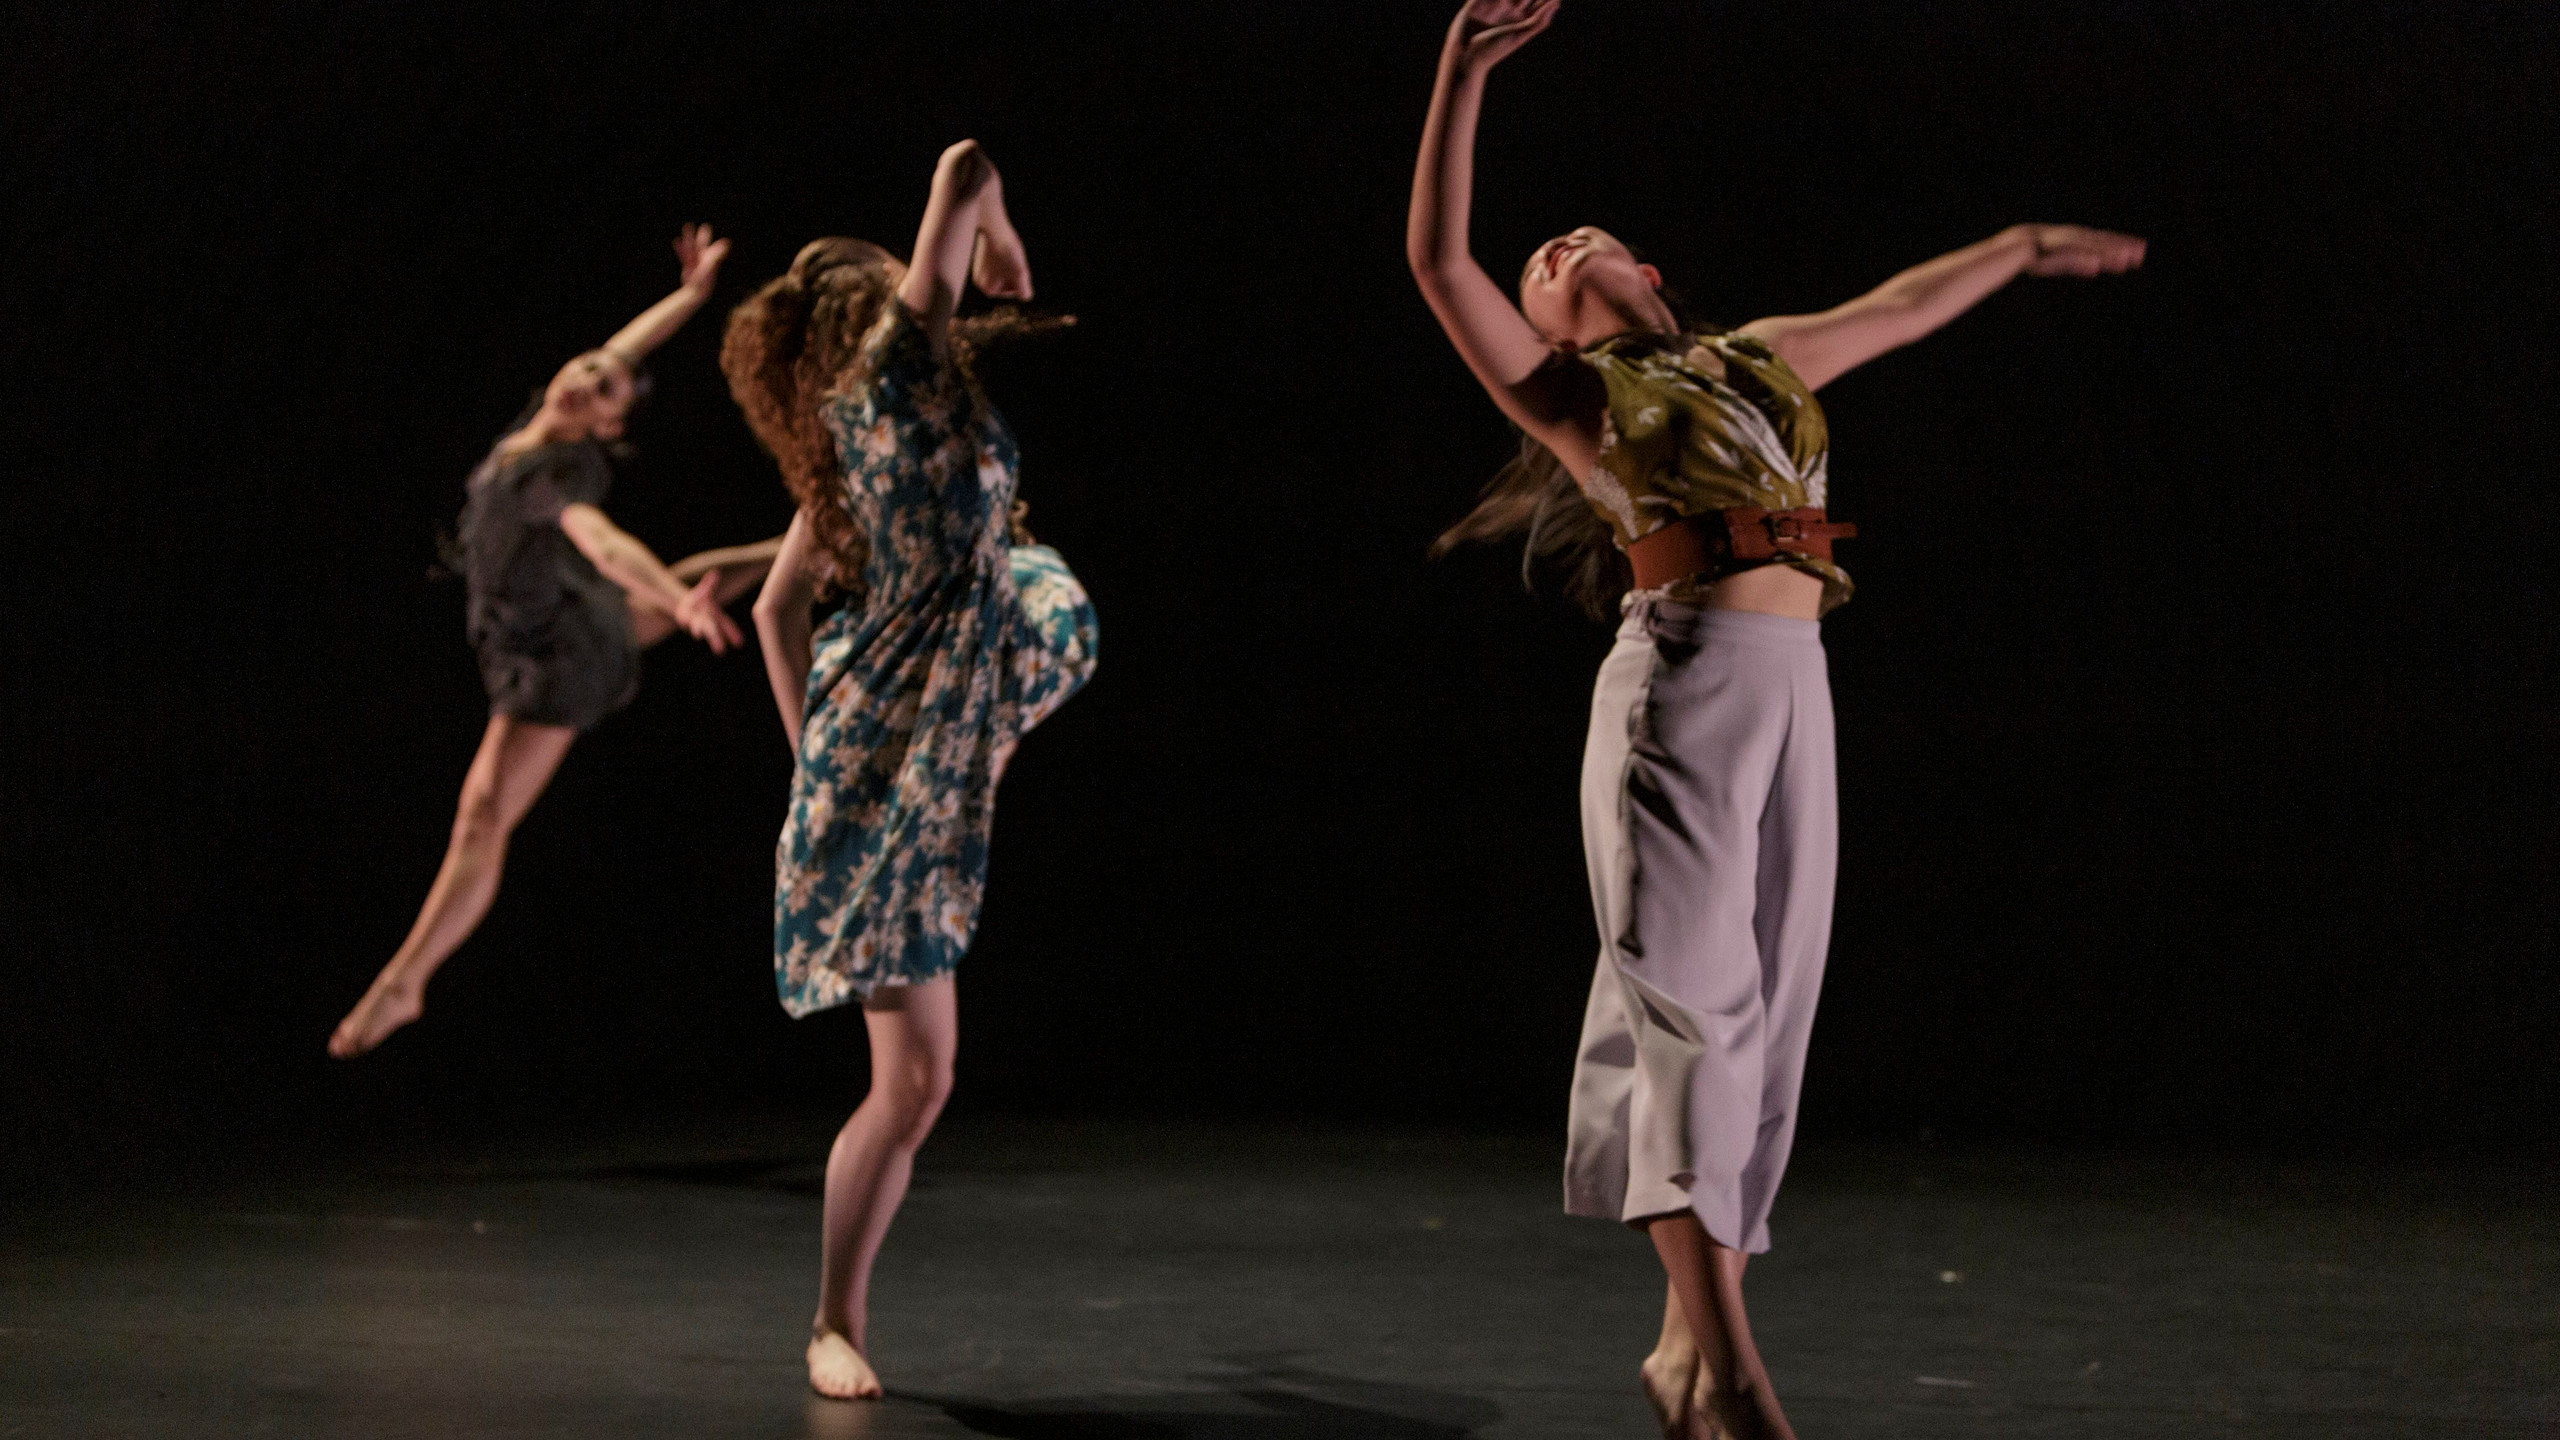 From Left: Kaiya Lee, Sydney Runions, and Melodie Yeung in 'A Day of Light' Choreography by Hanna Kiel